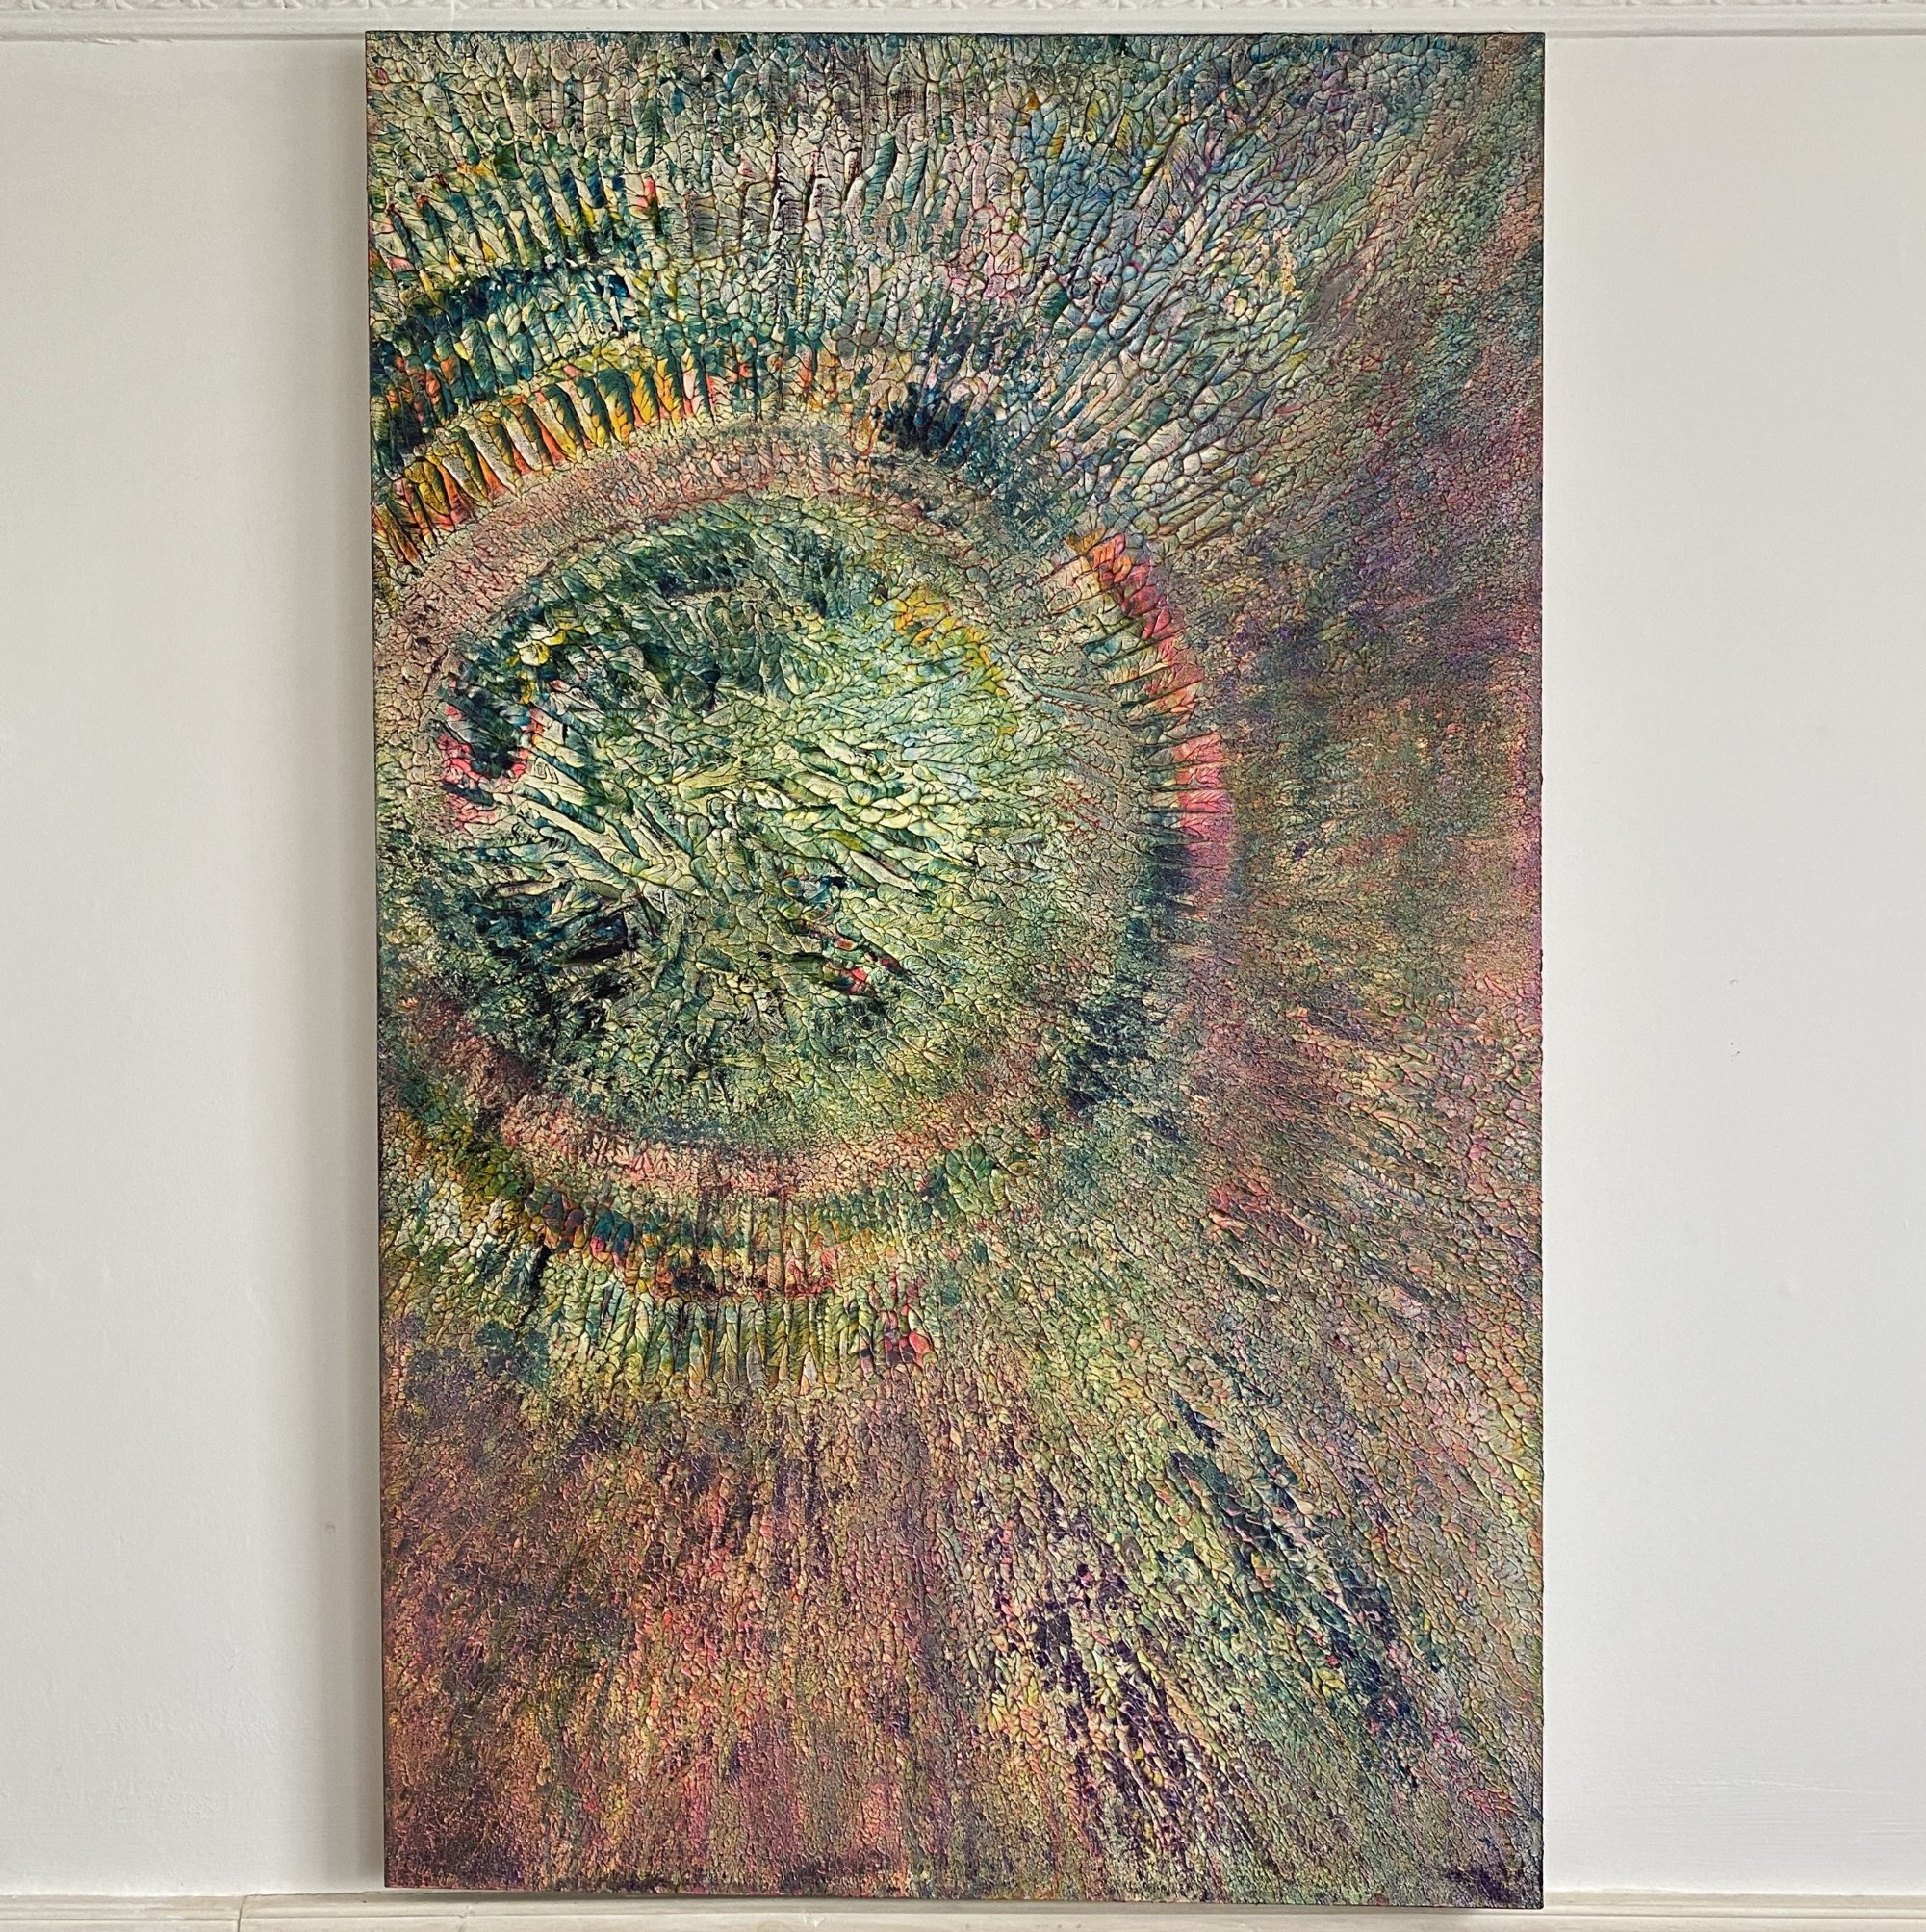 full gallery view of life abstract painting inspired by organic growth plant life by emily duchscherer kirk